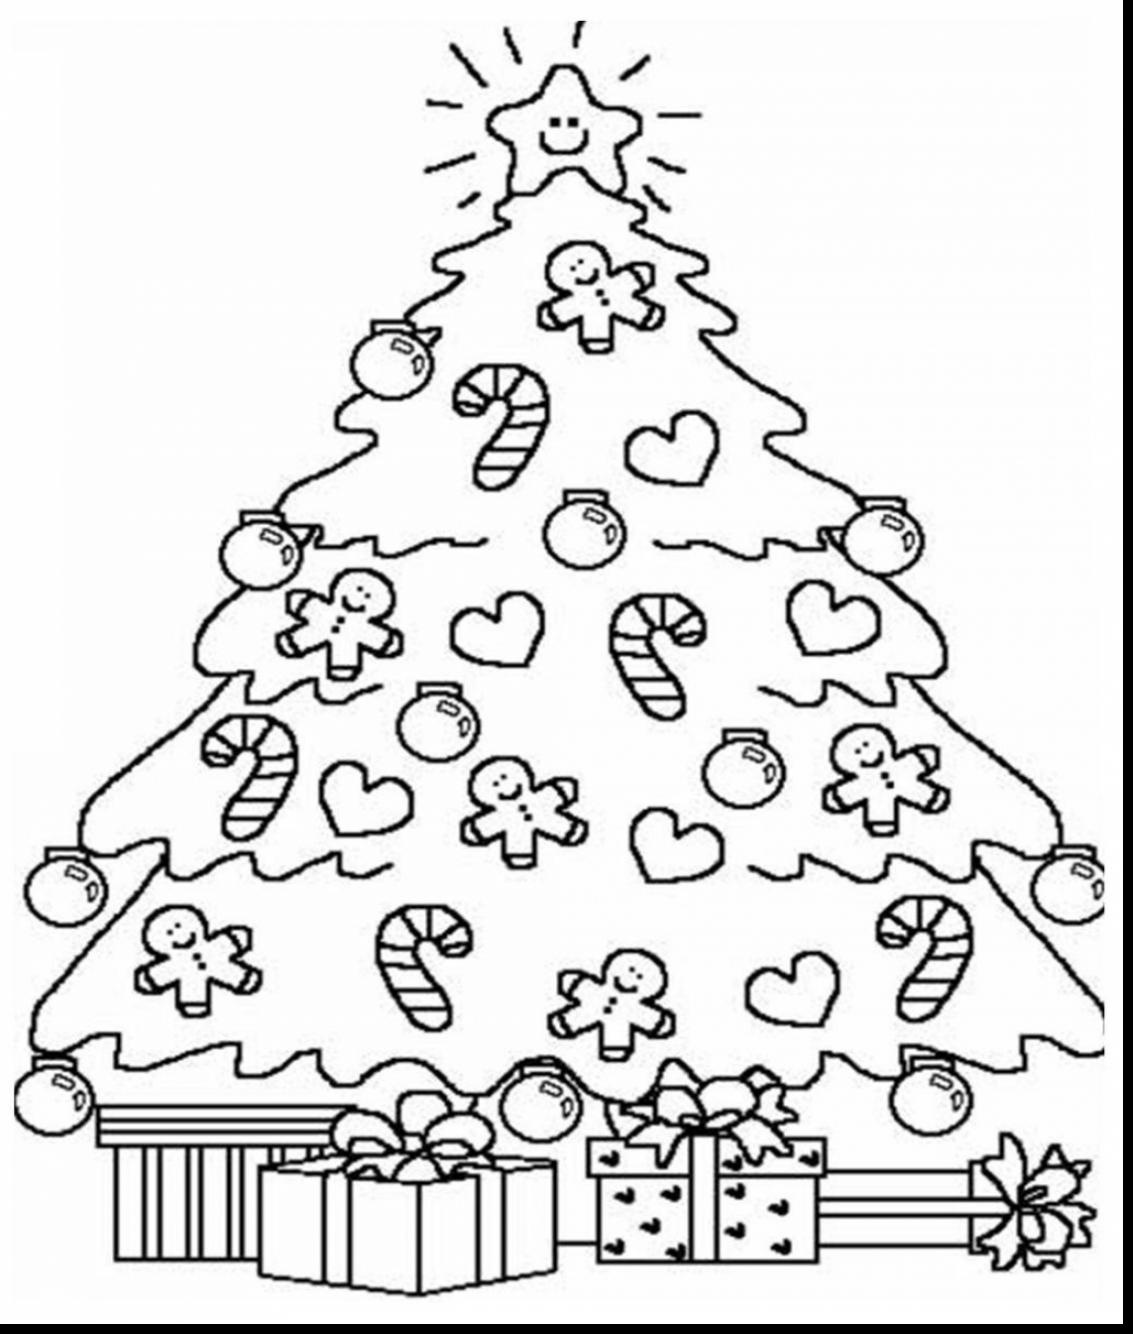 Adult Christmas Tree Coloring Pages at GetColorings.com ...